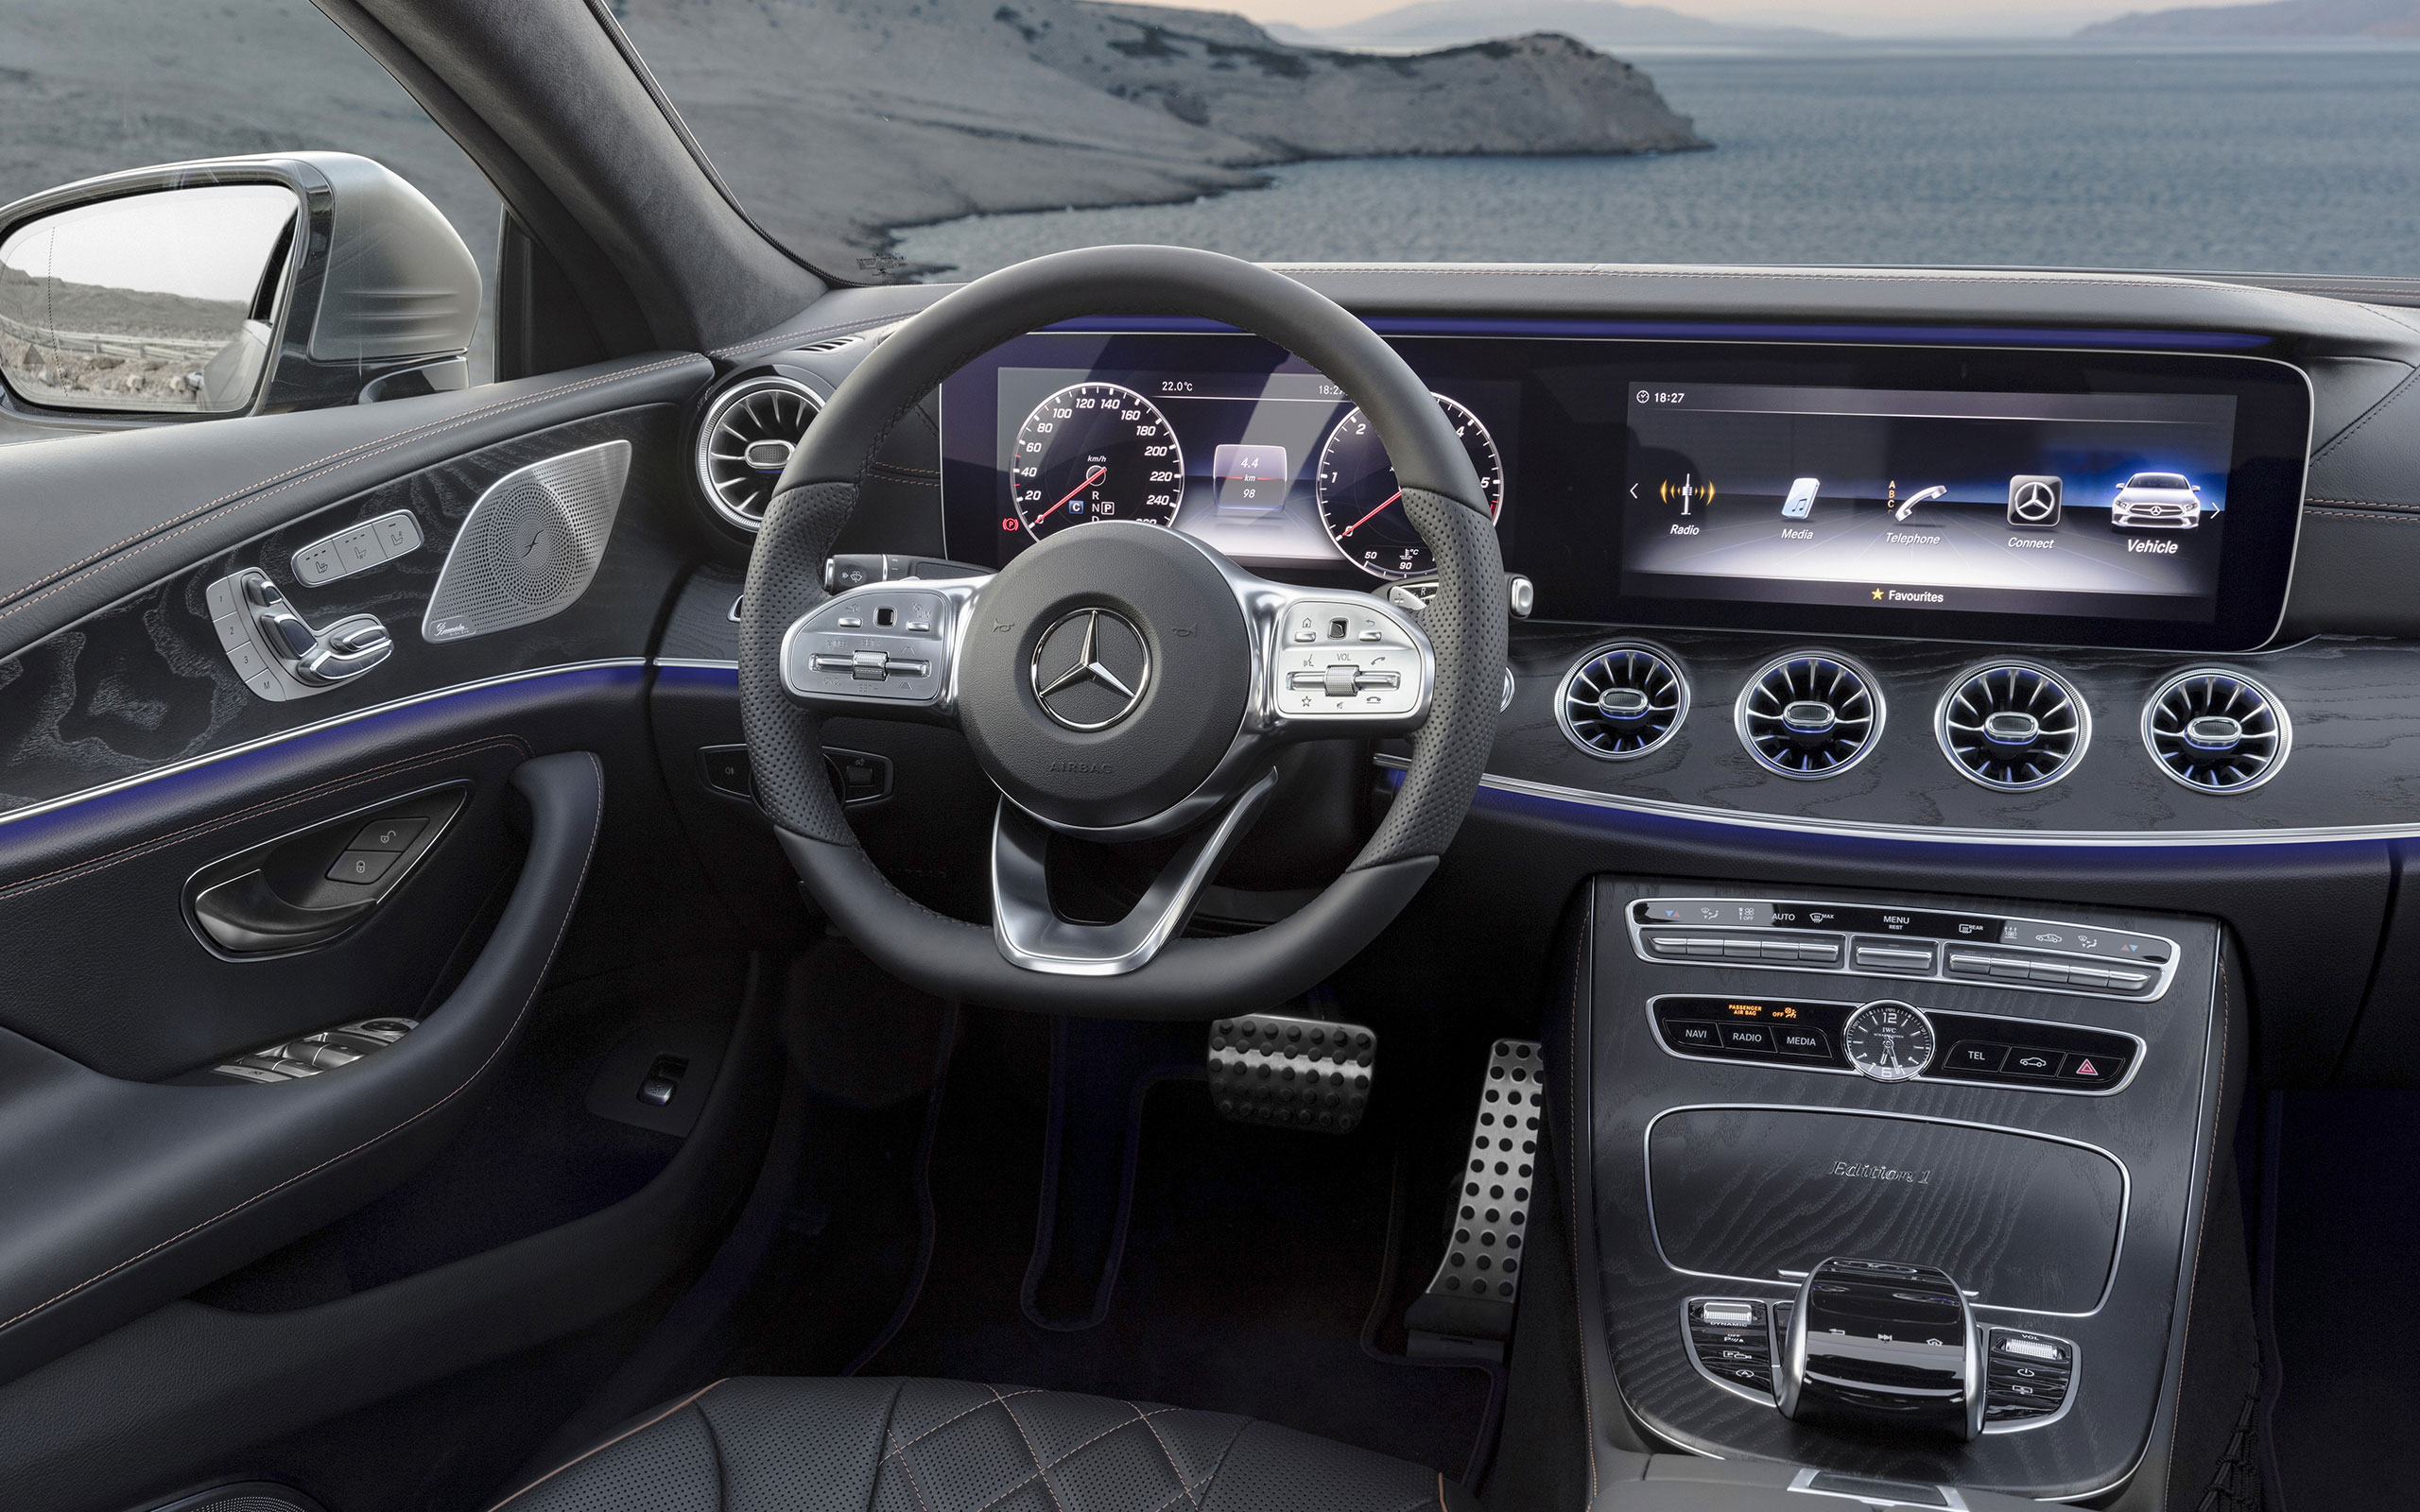 https://assets.mbusa.com/vcm/MB/DigitalAssets/FutureModels/Responsive/2019-CLS/Gallery/2019-CLS-COUPE-FUTURE-GALLERY-002-WR-D.jpg